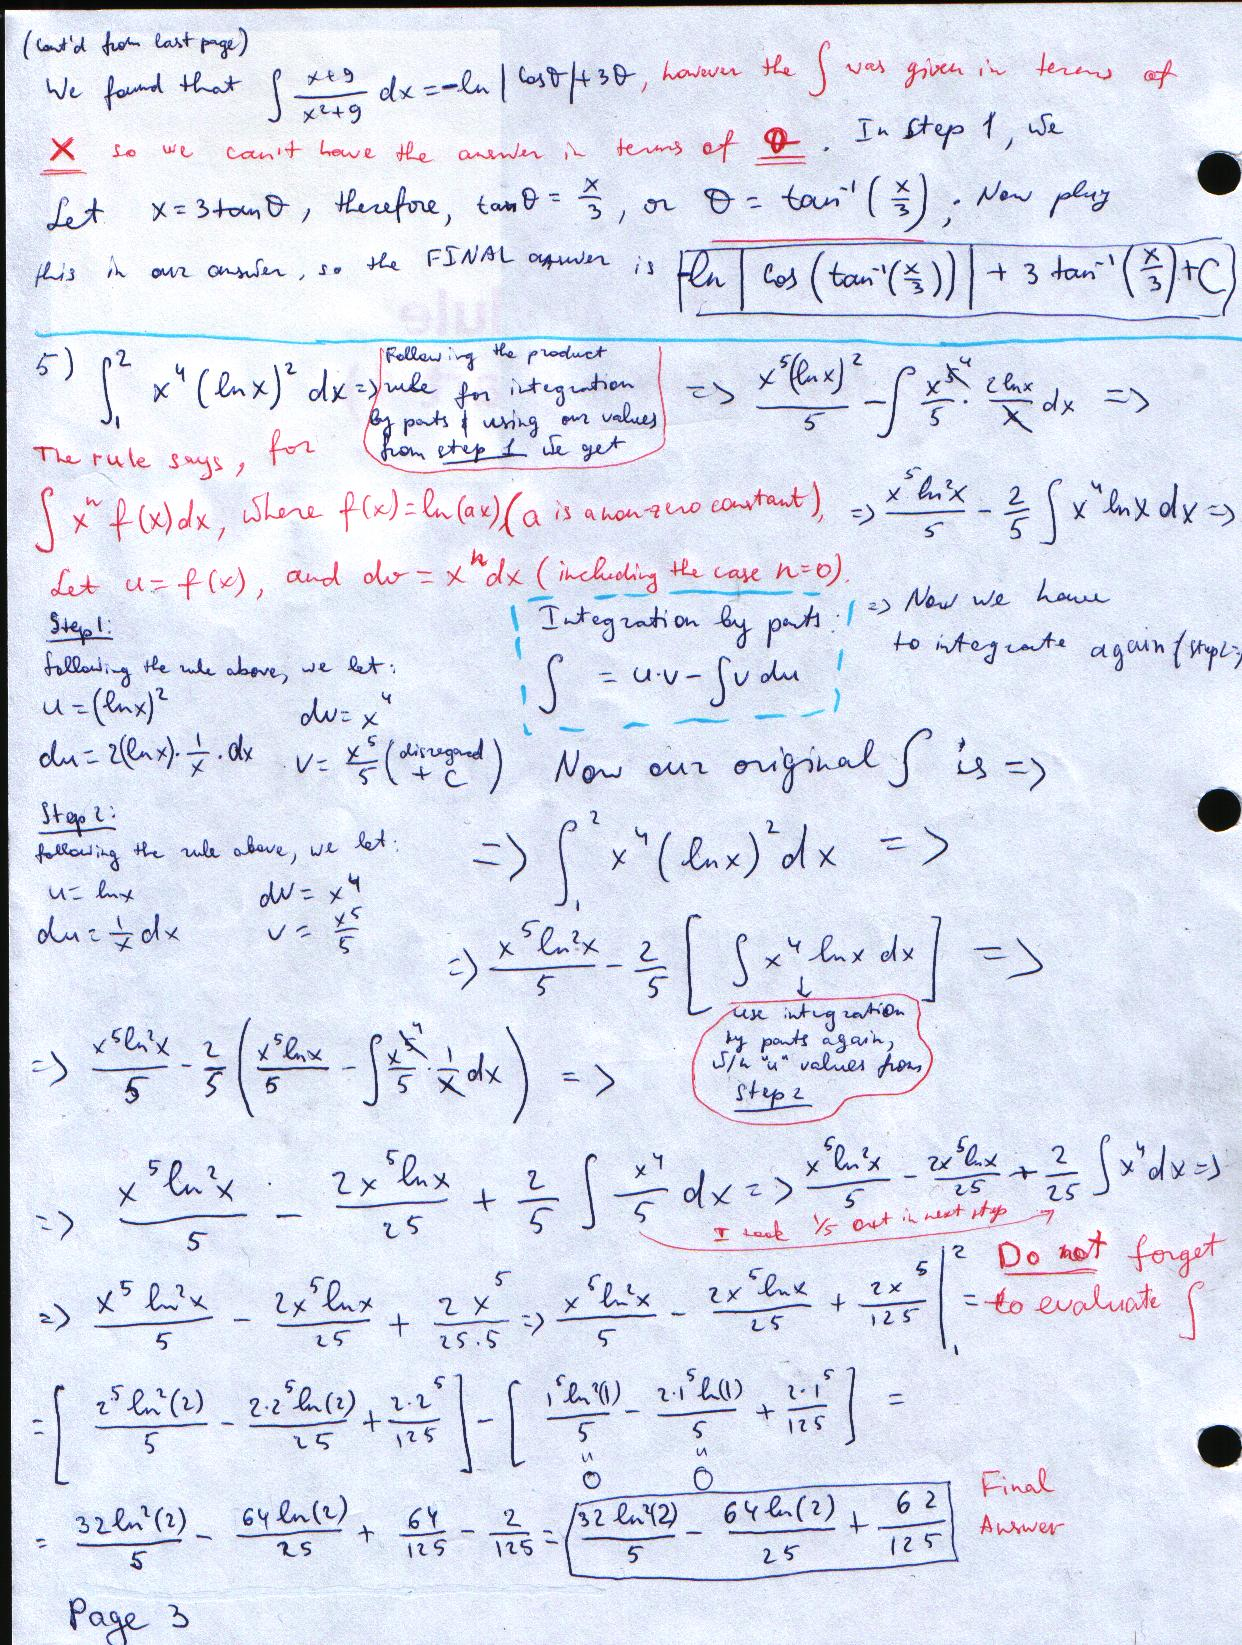 Calculus Review Sheet Problems Solutions 12 17 09